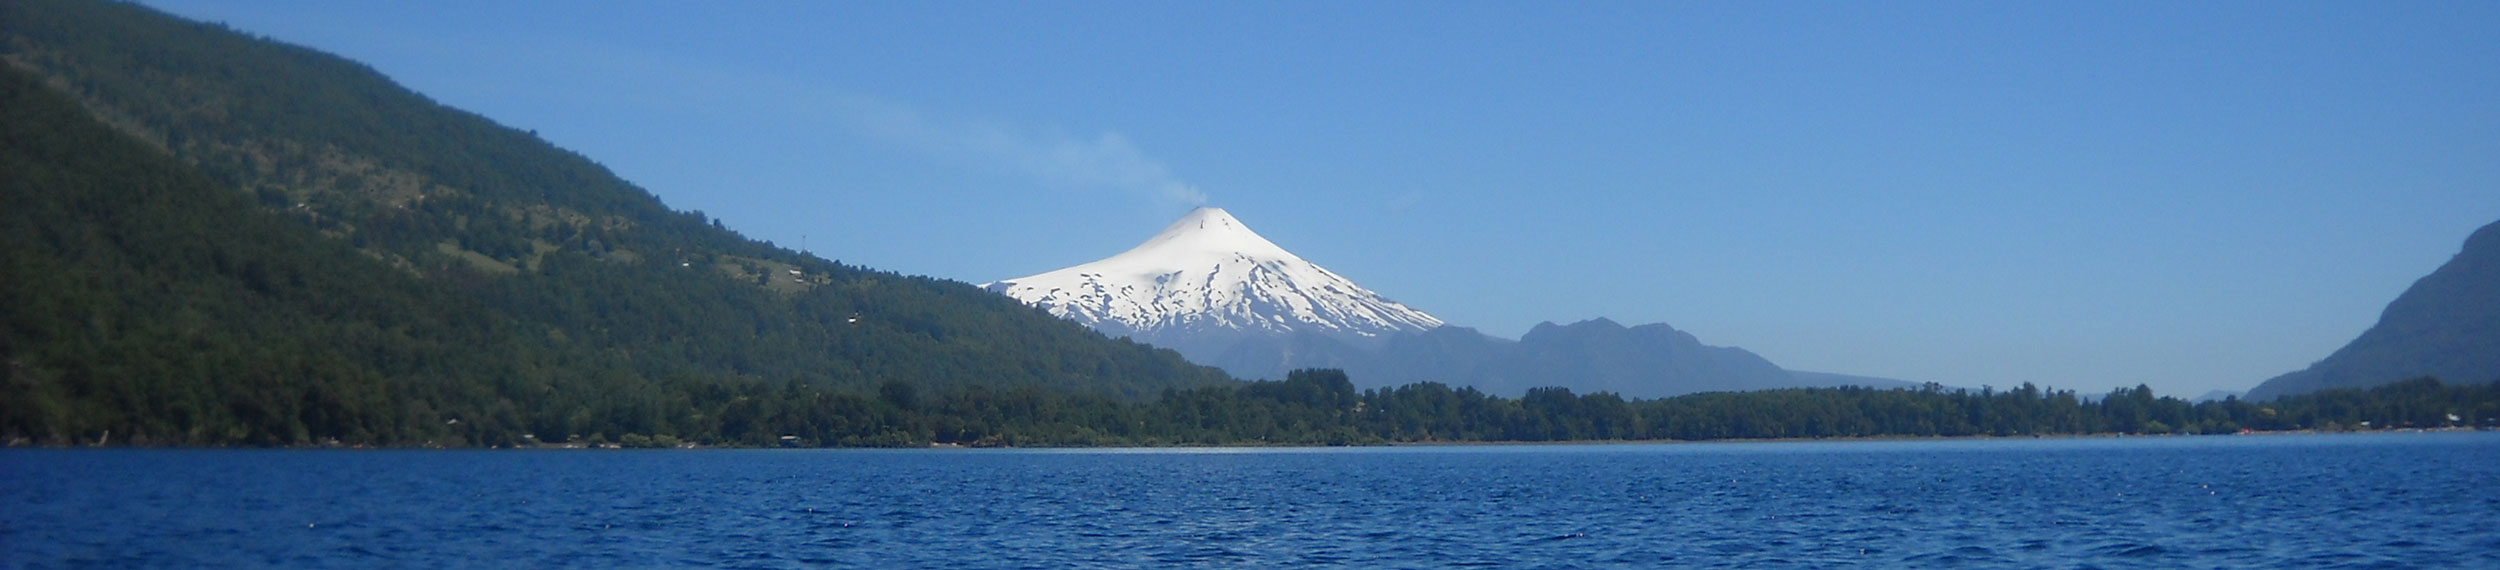 The snow covered Volcán Villarrica behind a big blue lake in Villarrica, Chile.